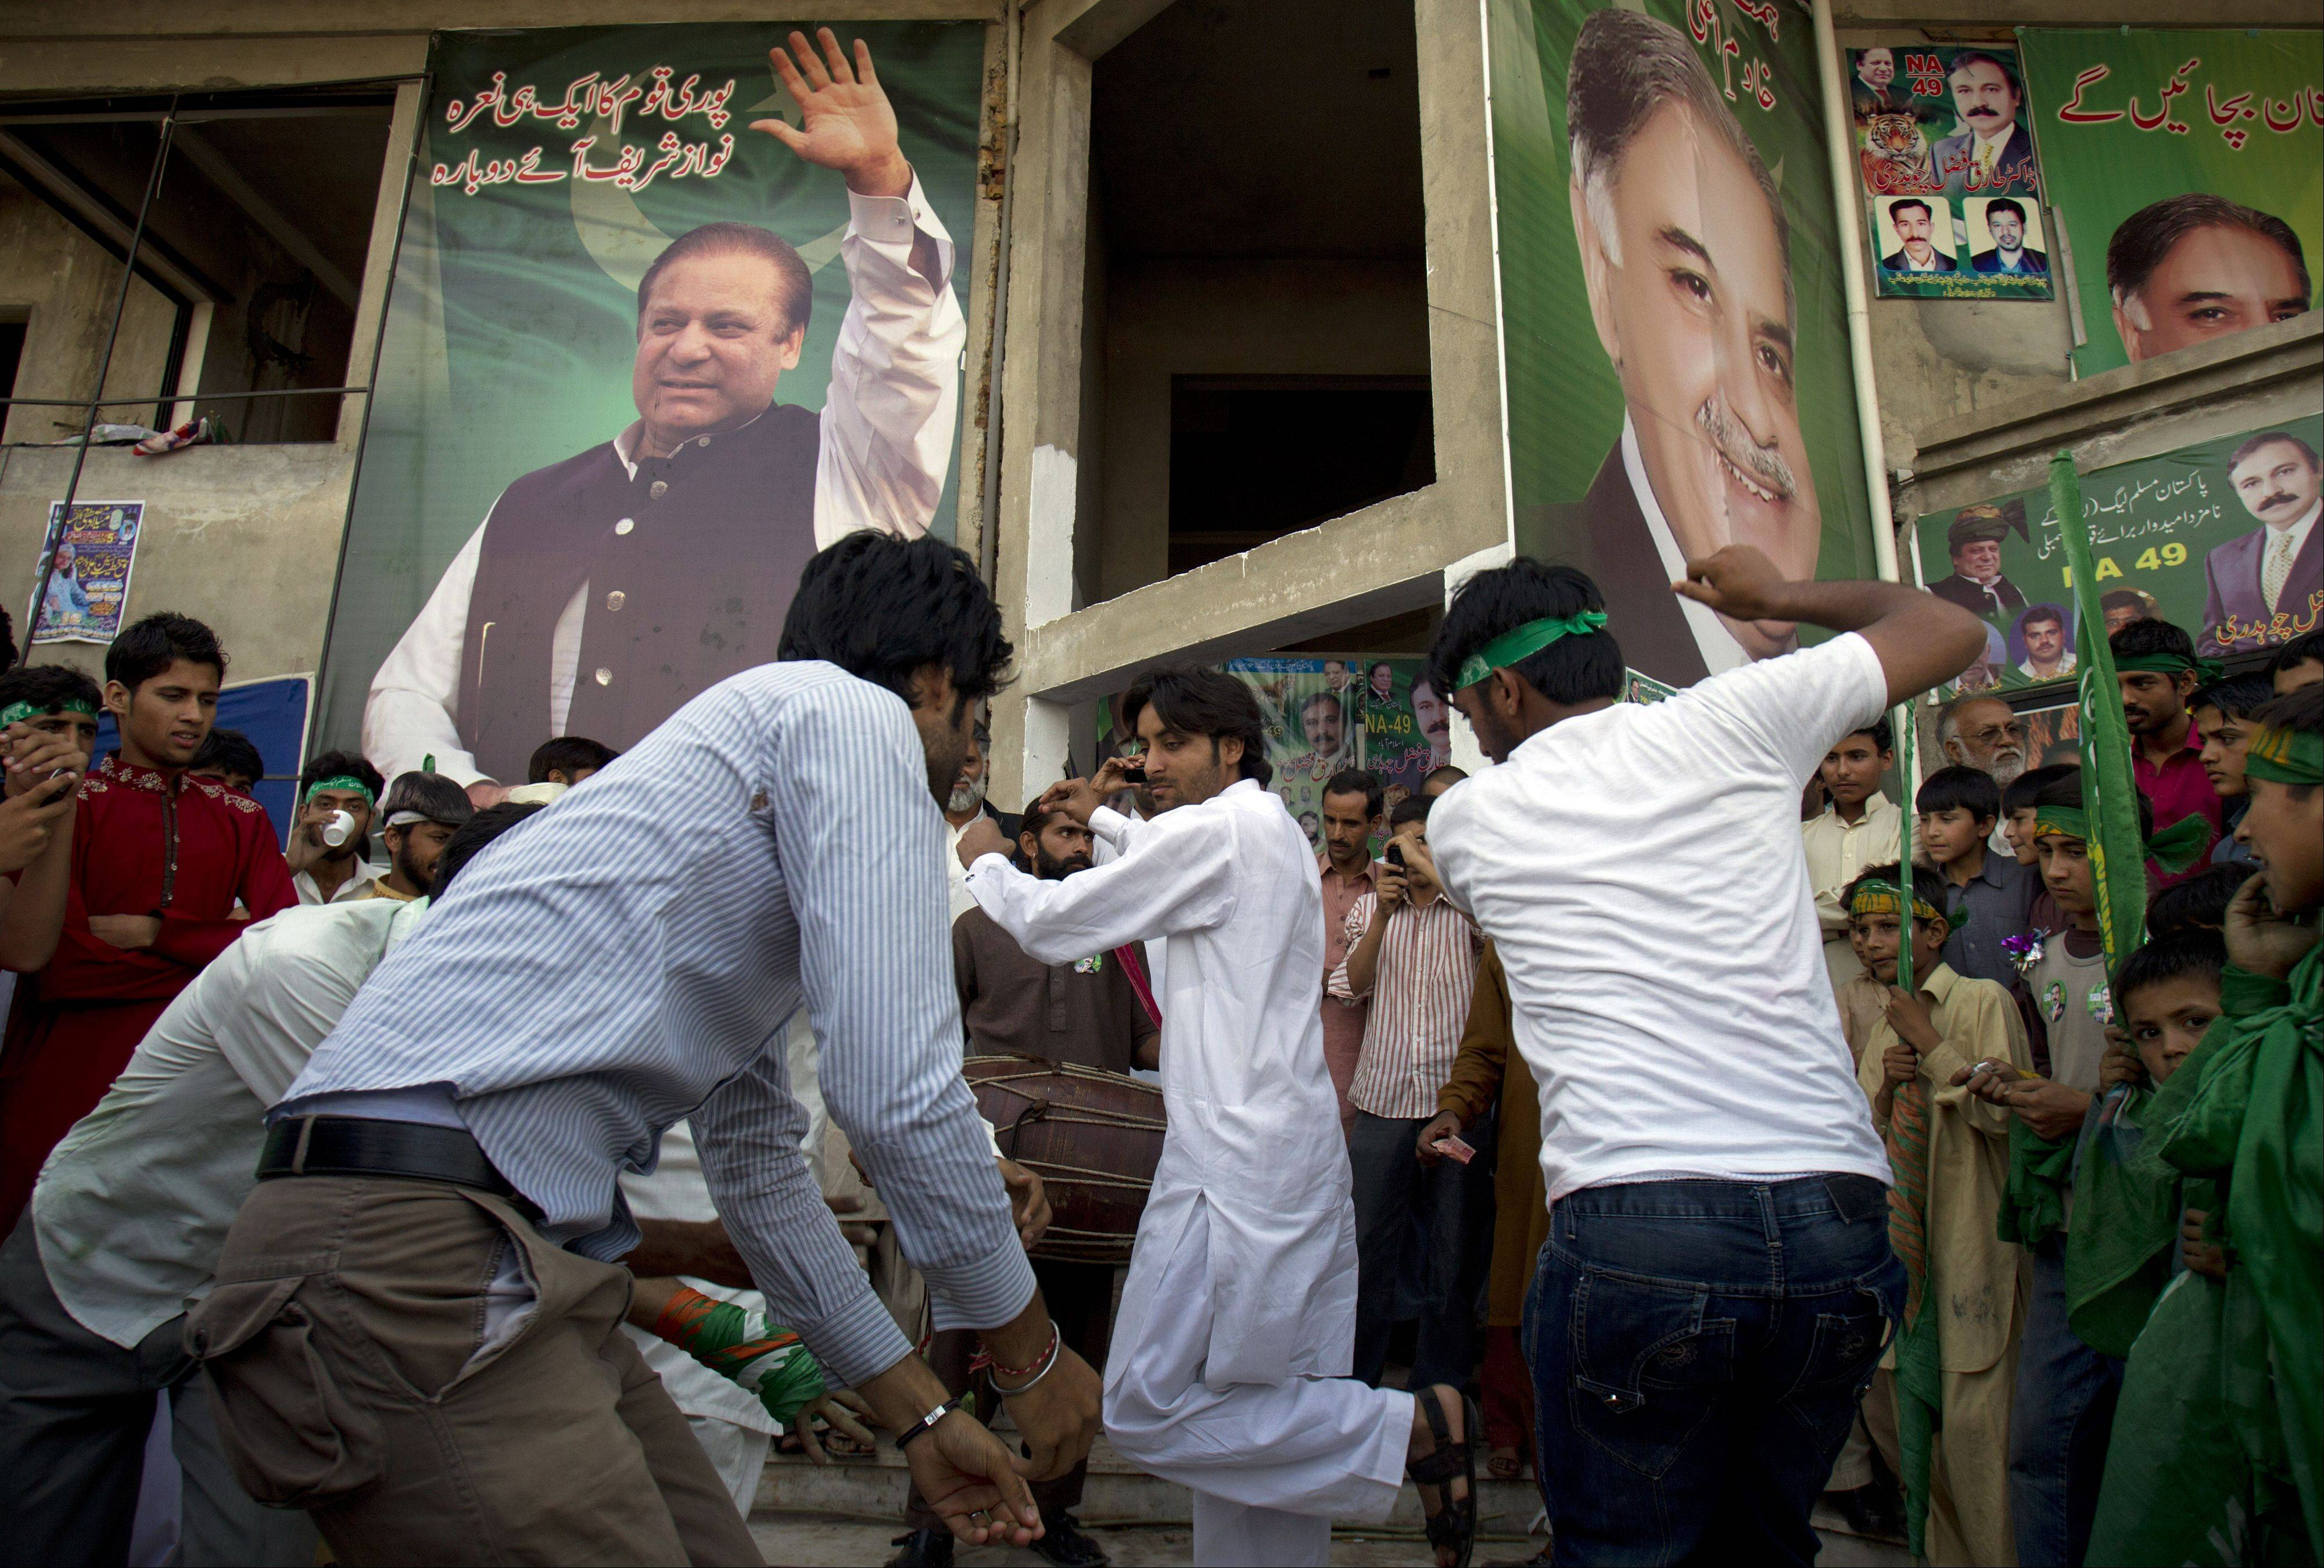 Supporters of Pakistan's former Prime Minister Nawaz Sharif celebrate the victory of their leader in Islamabad, Pakistan, on Sunday.